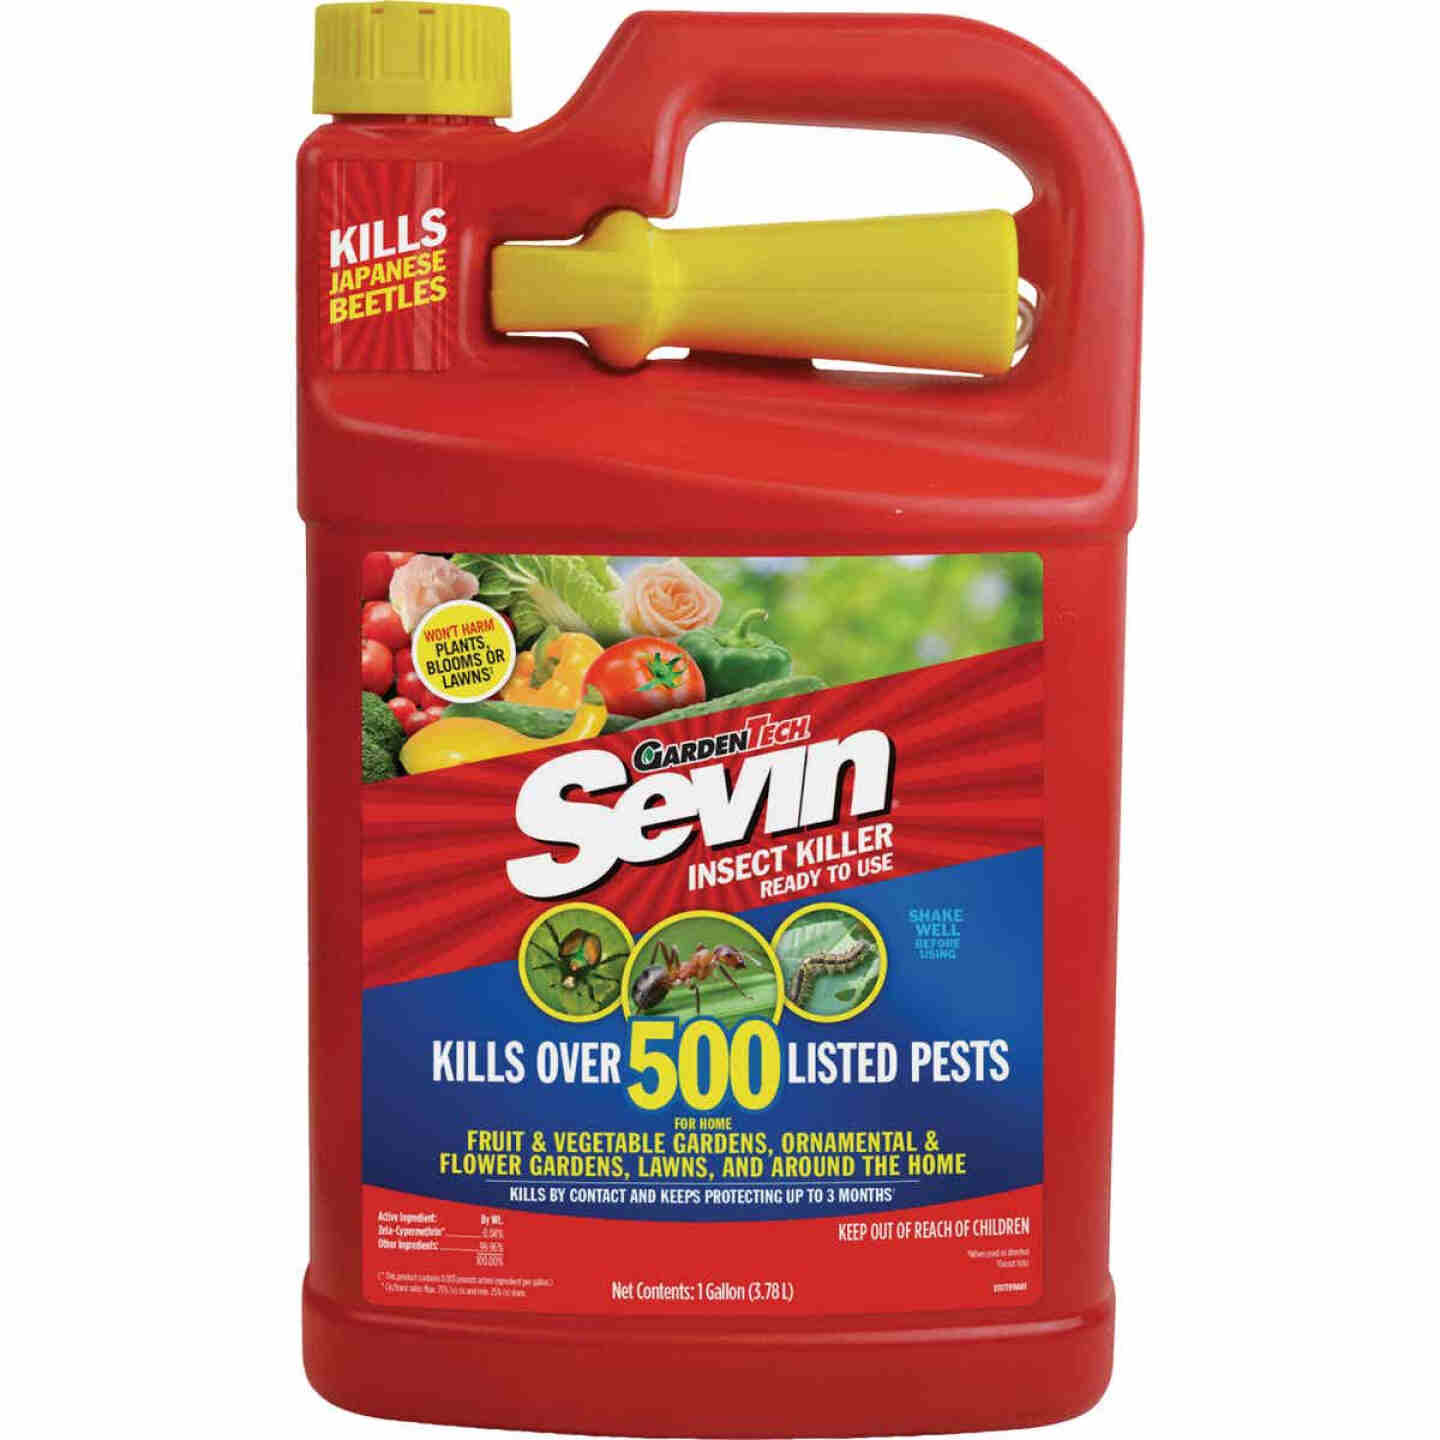 Garden Tech Sevin 1 Gal. Ready To Use Trigger Spray Insect Killer Image 1